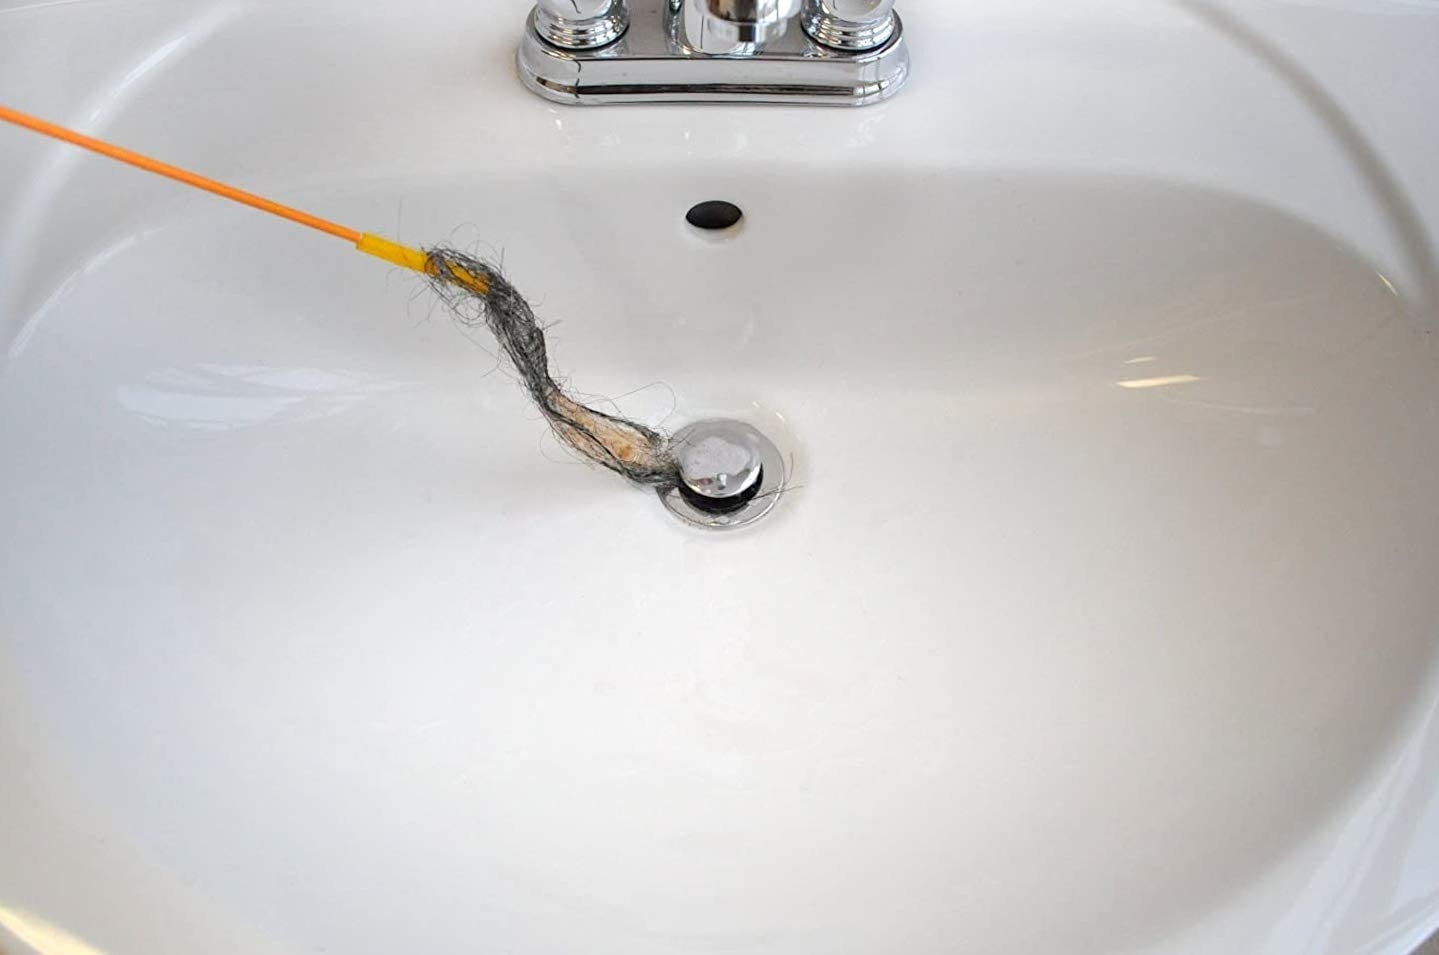 drain snake pulling out hair from a sink